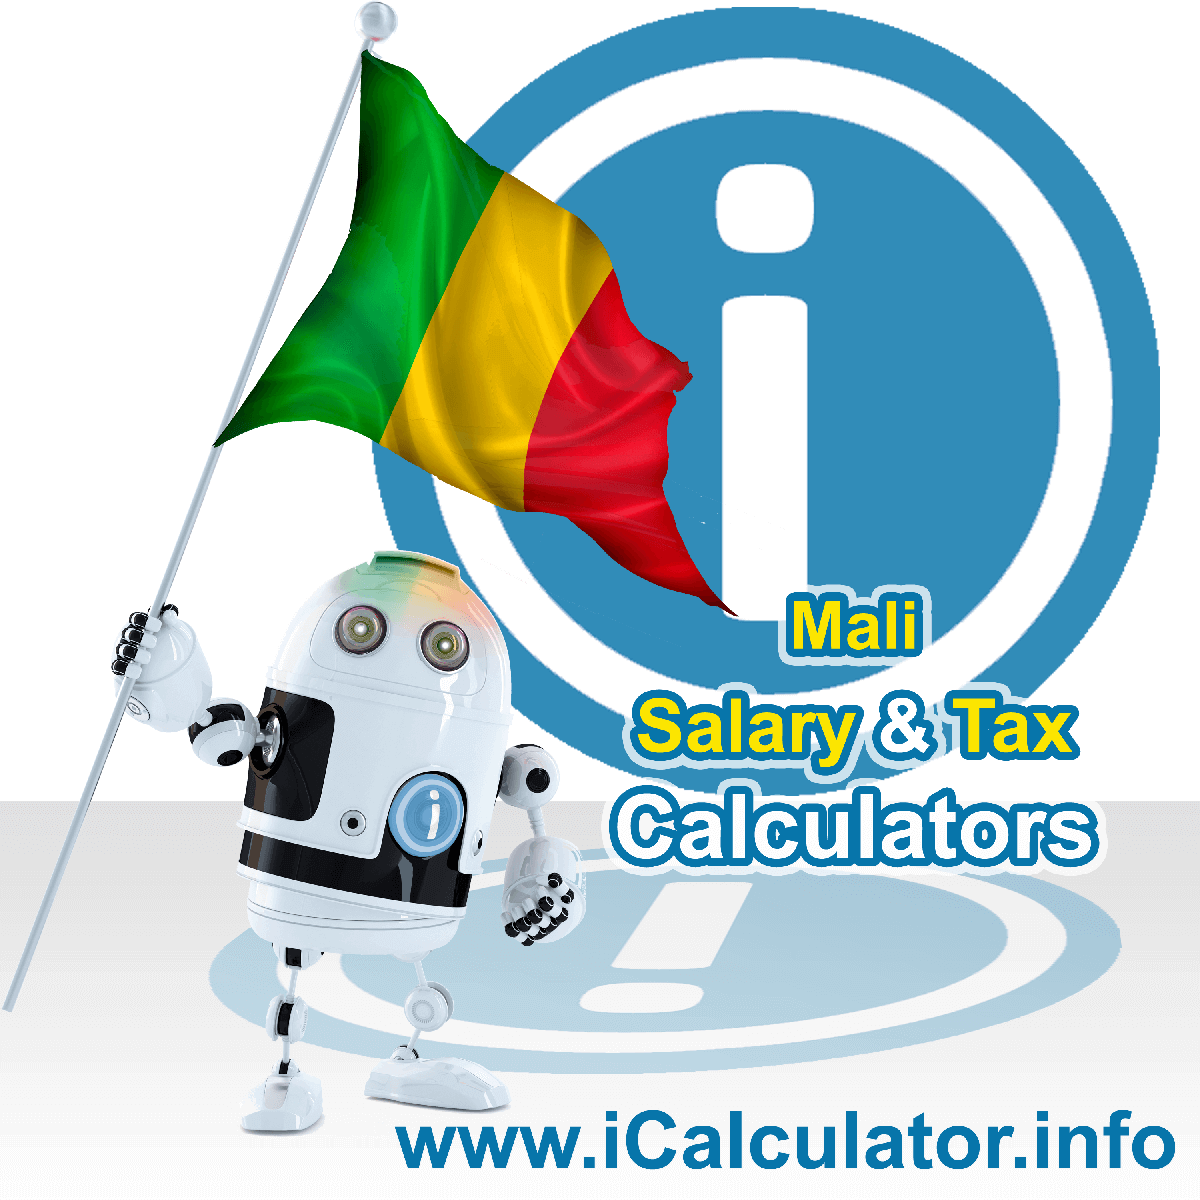 Mali Wage Calculator. This image shows the Mali flag and information relating to the tax formula for the Mali Tax Calculator